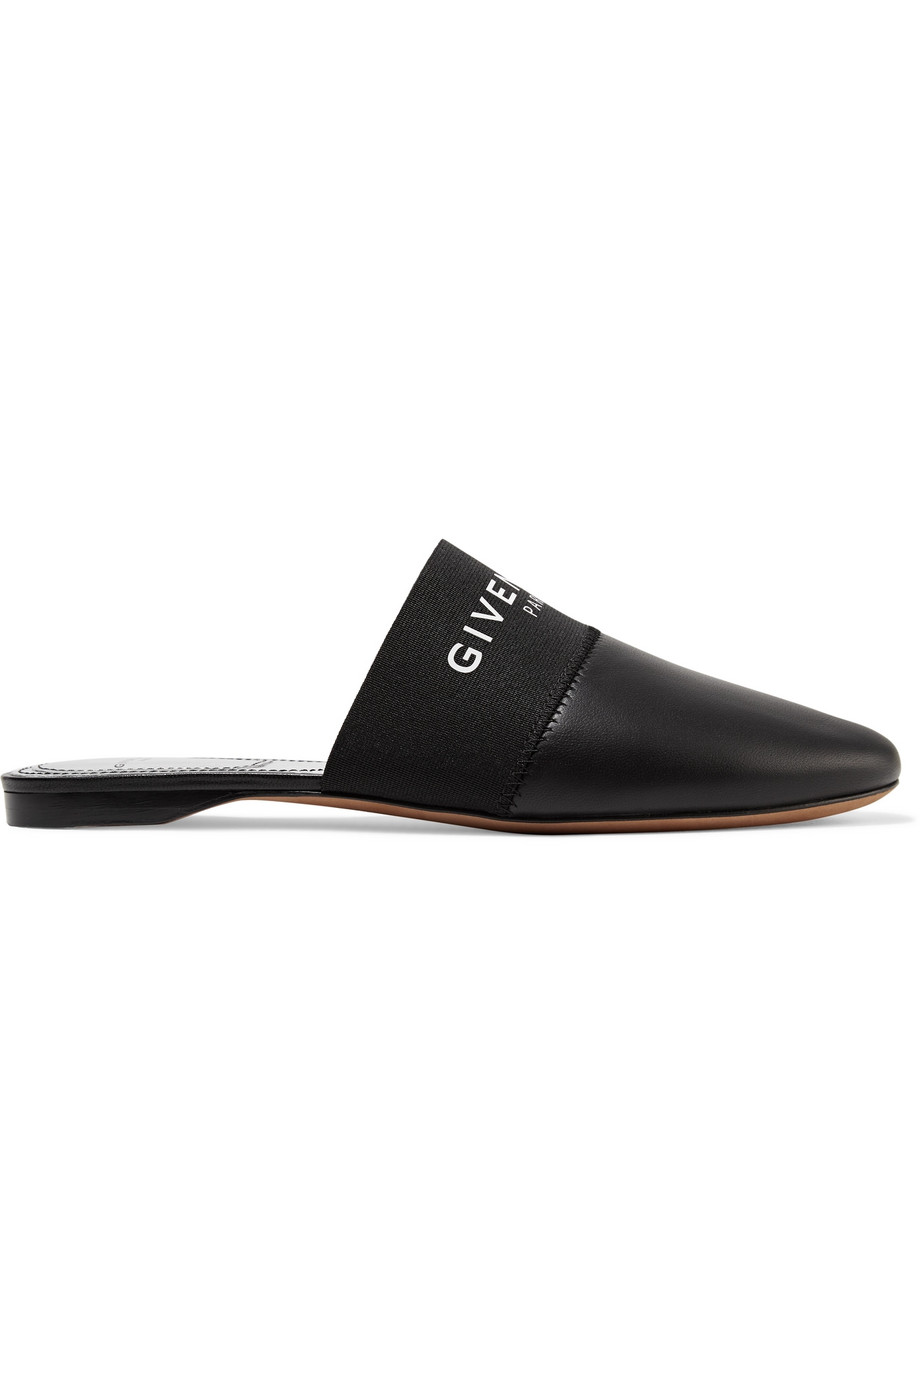 GIVENCHY Bedford logo-print leather slippers